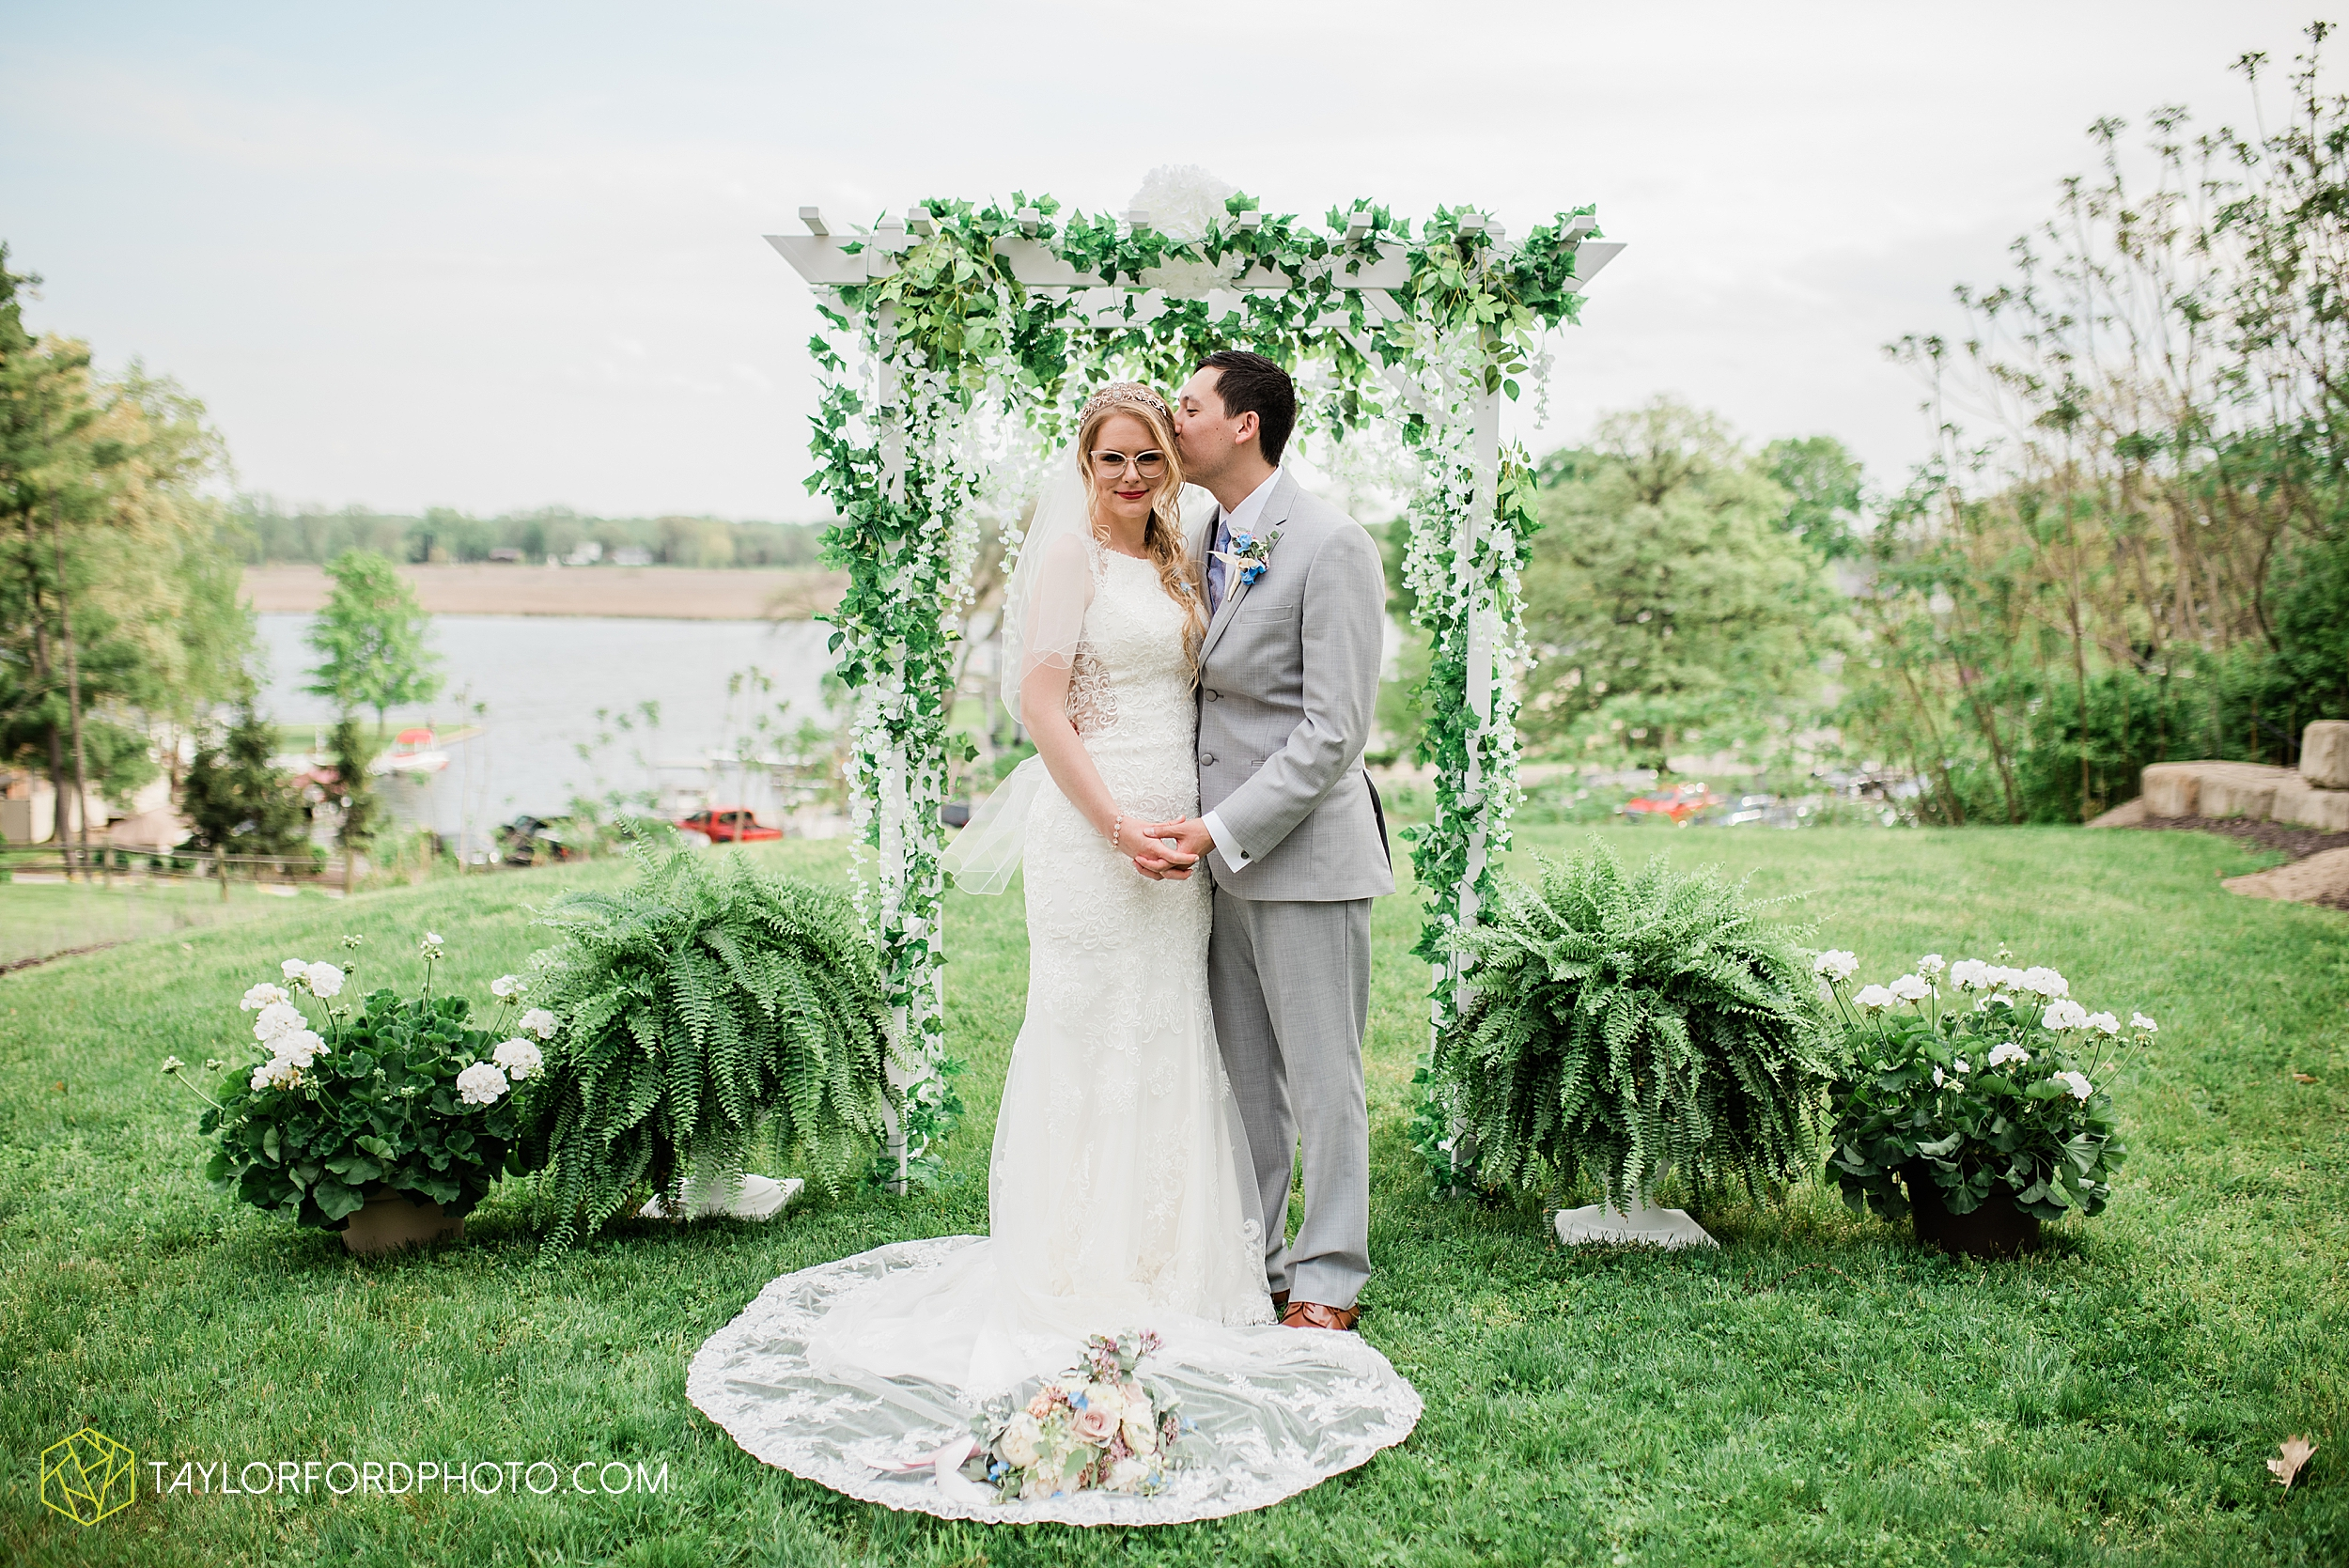 janine-shaun-oakwood-resort-syracuse-indiana-lake-wawasee-wedding-hilltop-one-fine-day-photographer-photography-taylor-ford-hirschy-photographer_2760.jpg